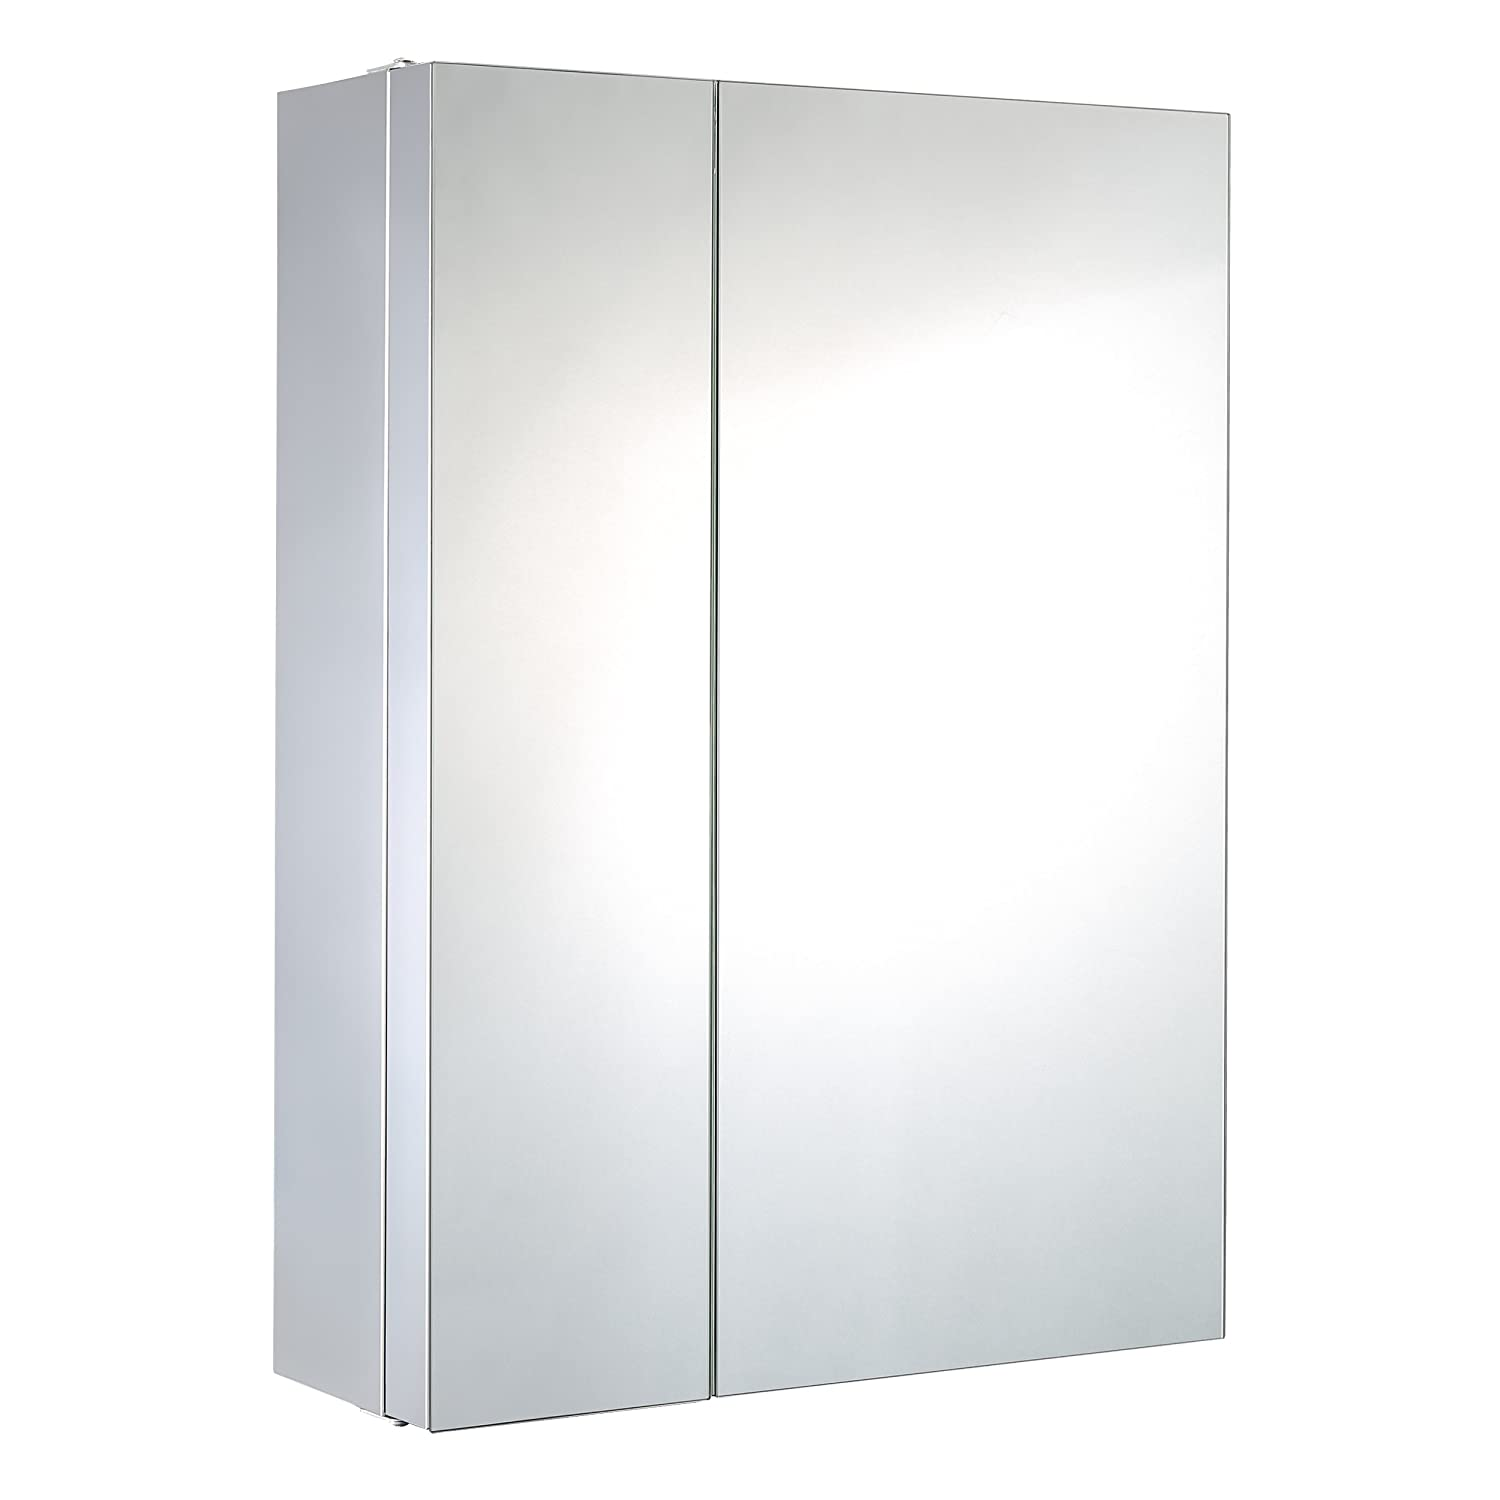 Harima - Double Door Corner Cabinet with Mirror and 2 Large Shelves and 3 Small Shelves, Wall Mounted, Stainless Steel Frame